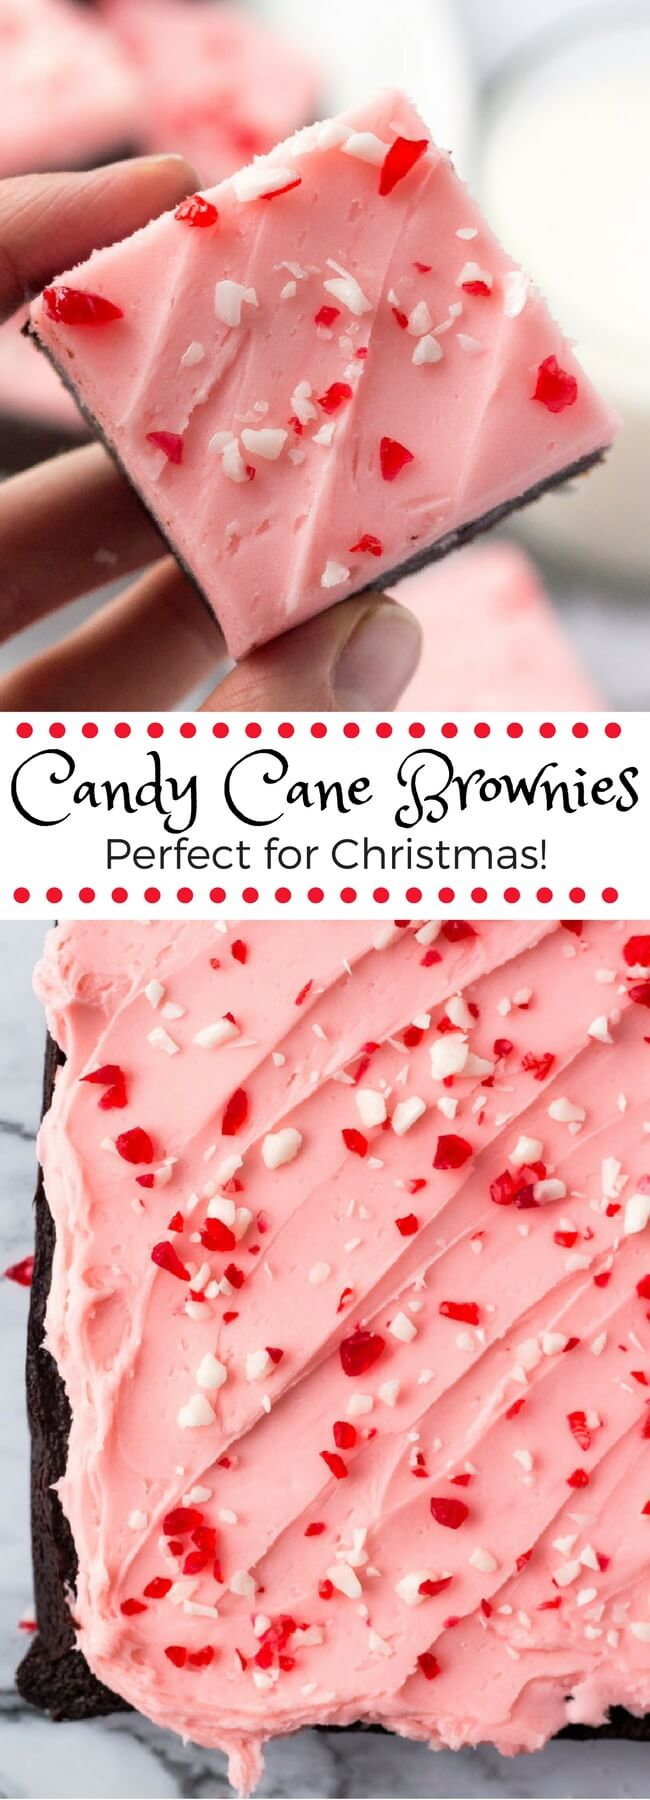 These candy cane brownies are the perfect Christmas brownies. They start with fudgy chewy brownies, then they're topped with a thick layer of creamy peppermint frosting and sprinkled with crushed candy canes. #christmasbrownies #peppermintbrownies #candycanebrownies #candycanes